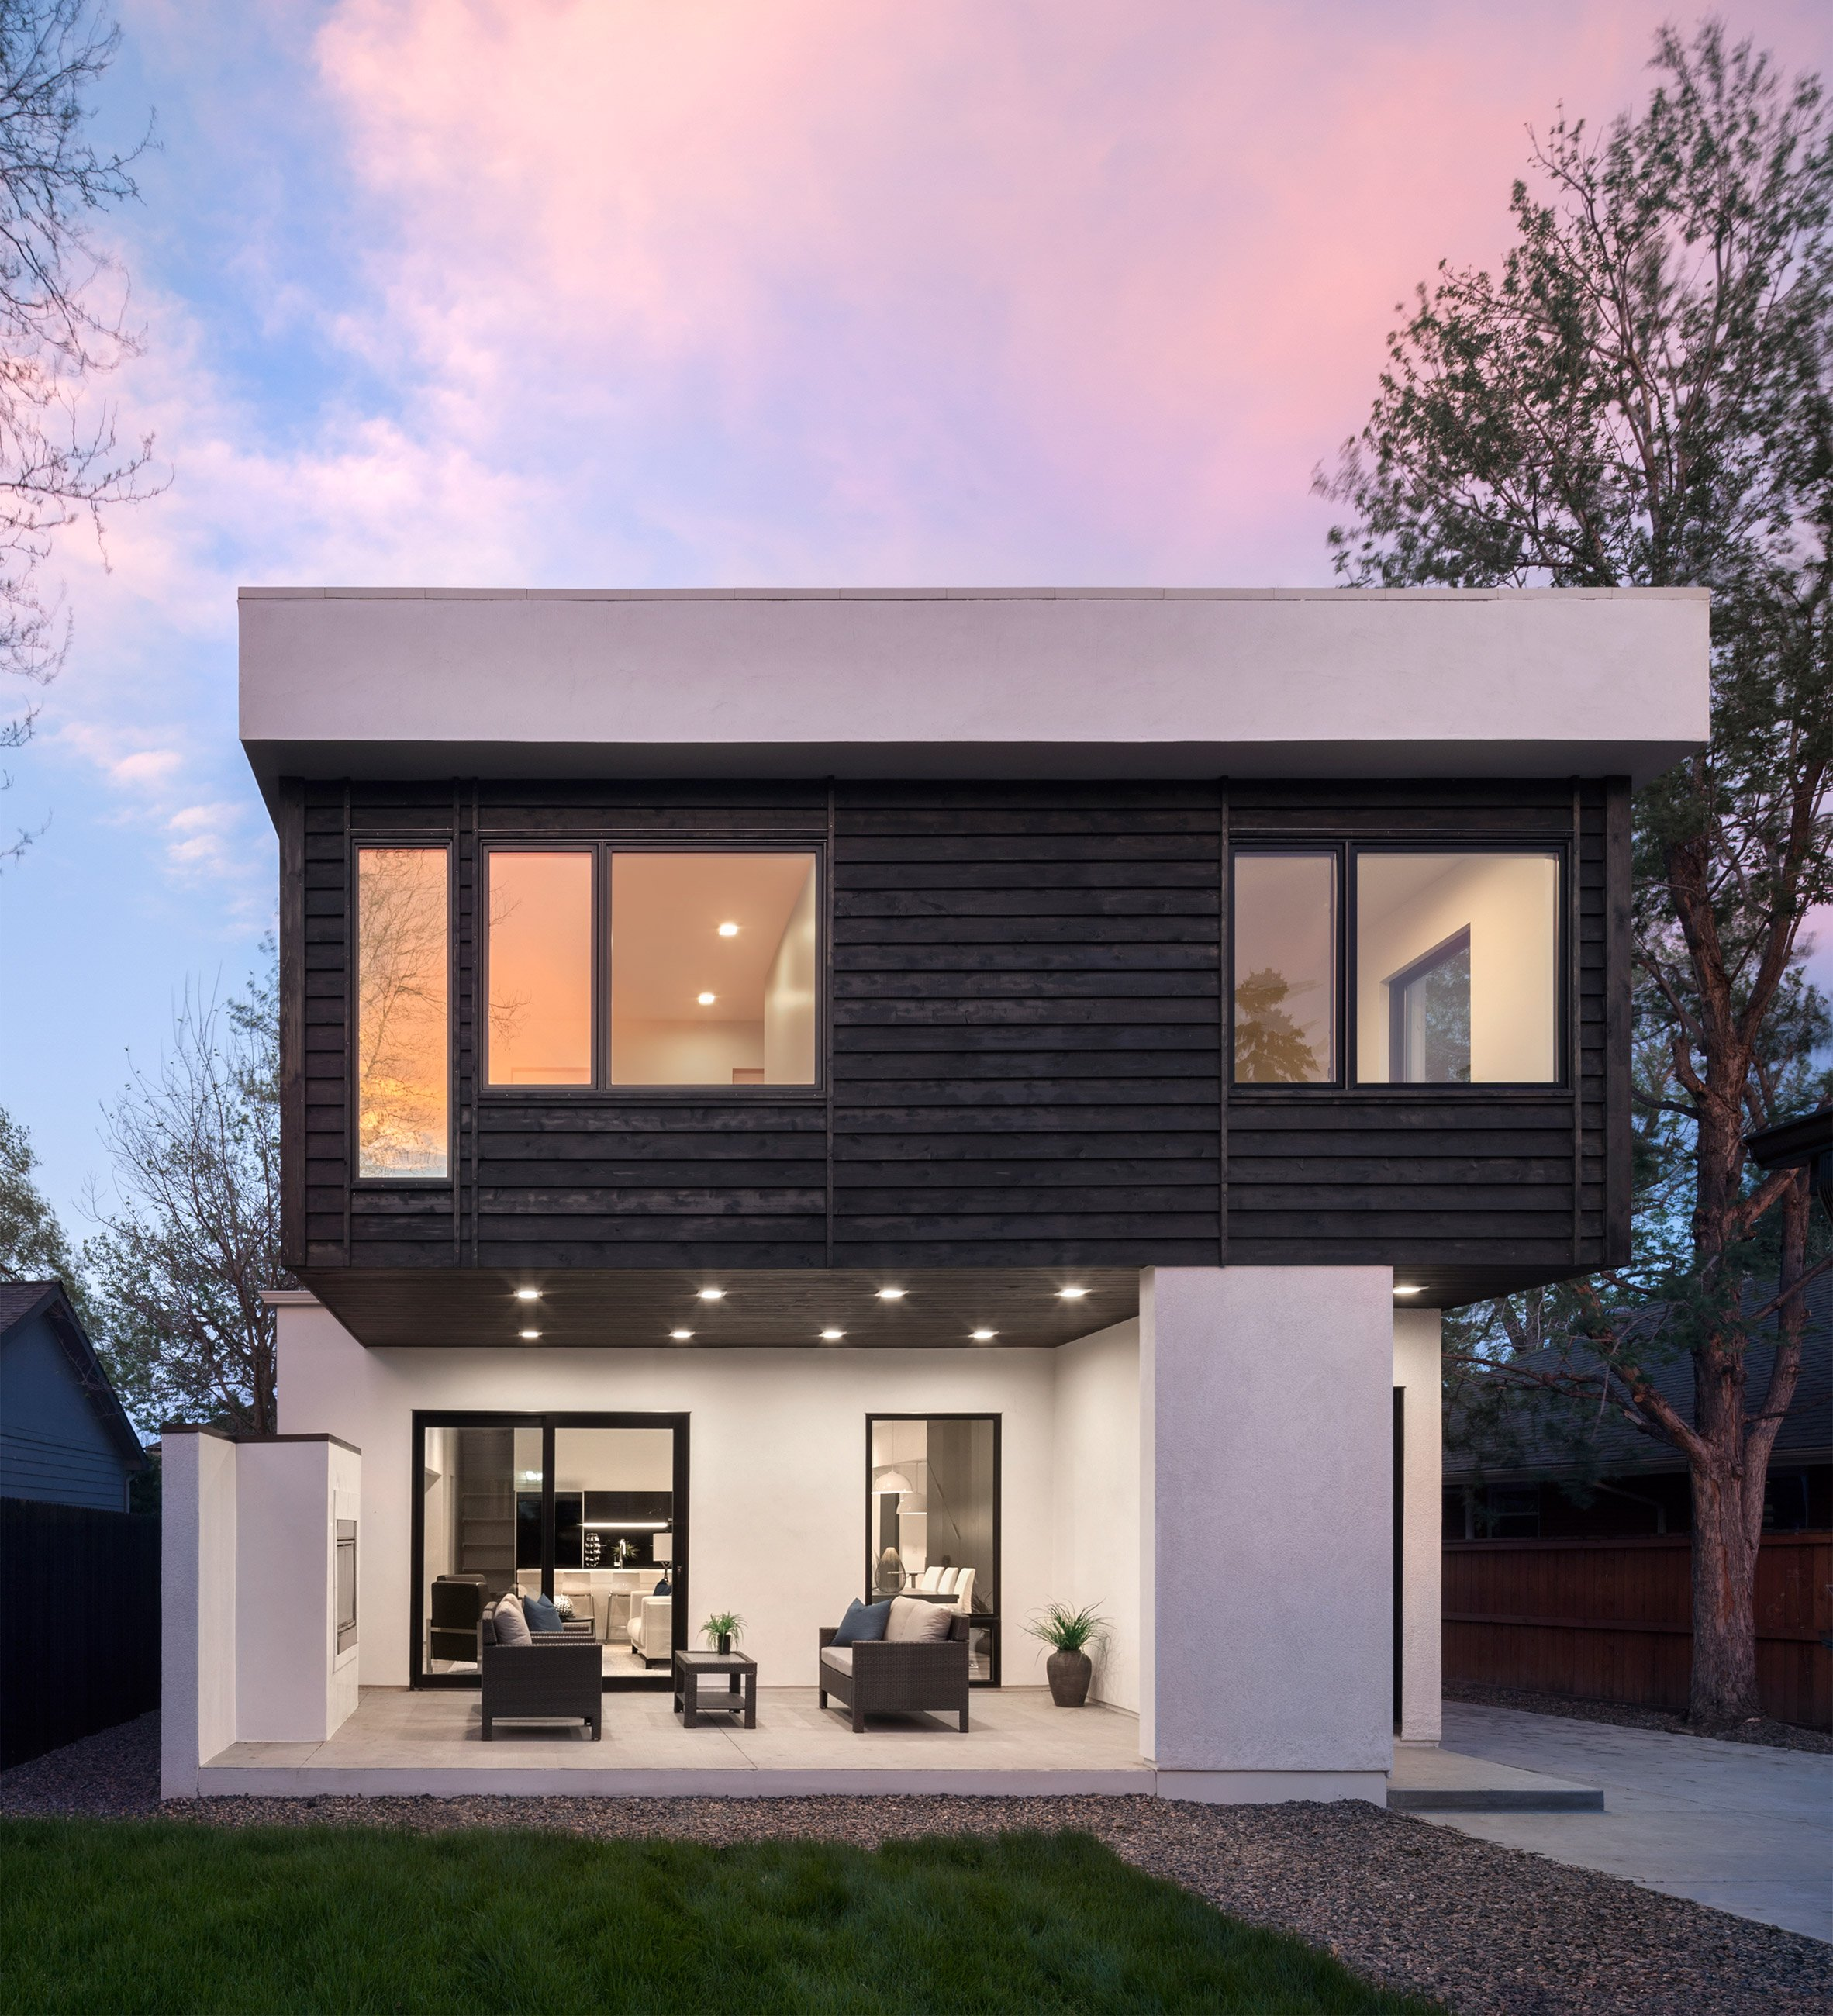 Meade Street by Meridian 105 Architecture